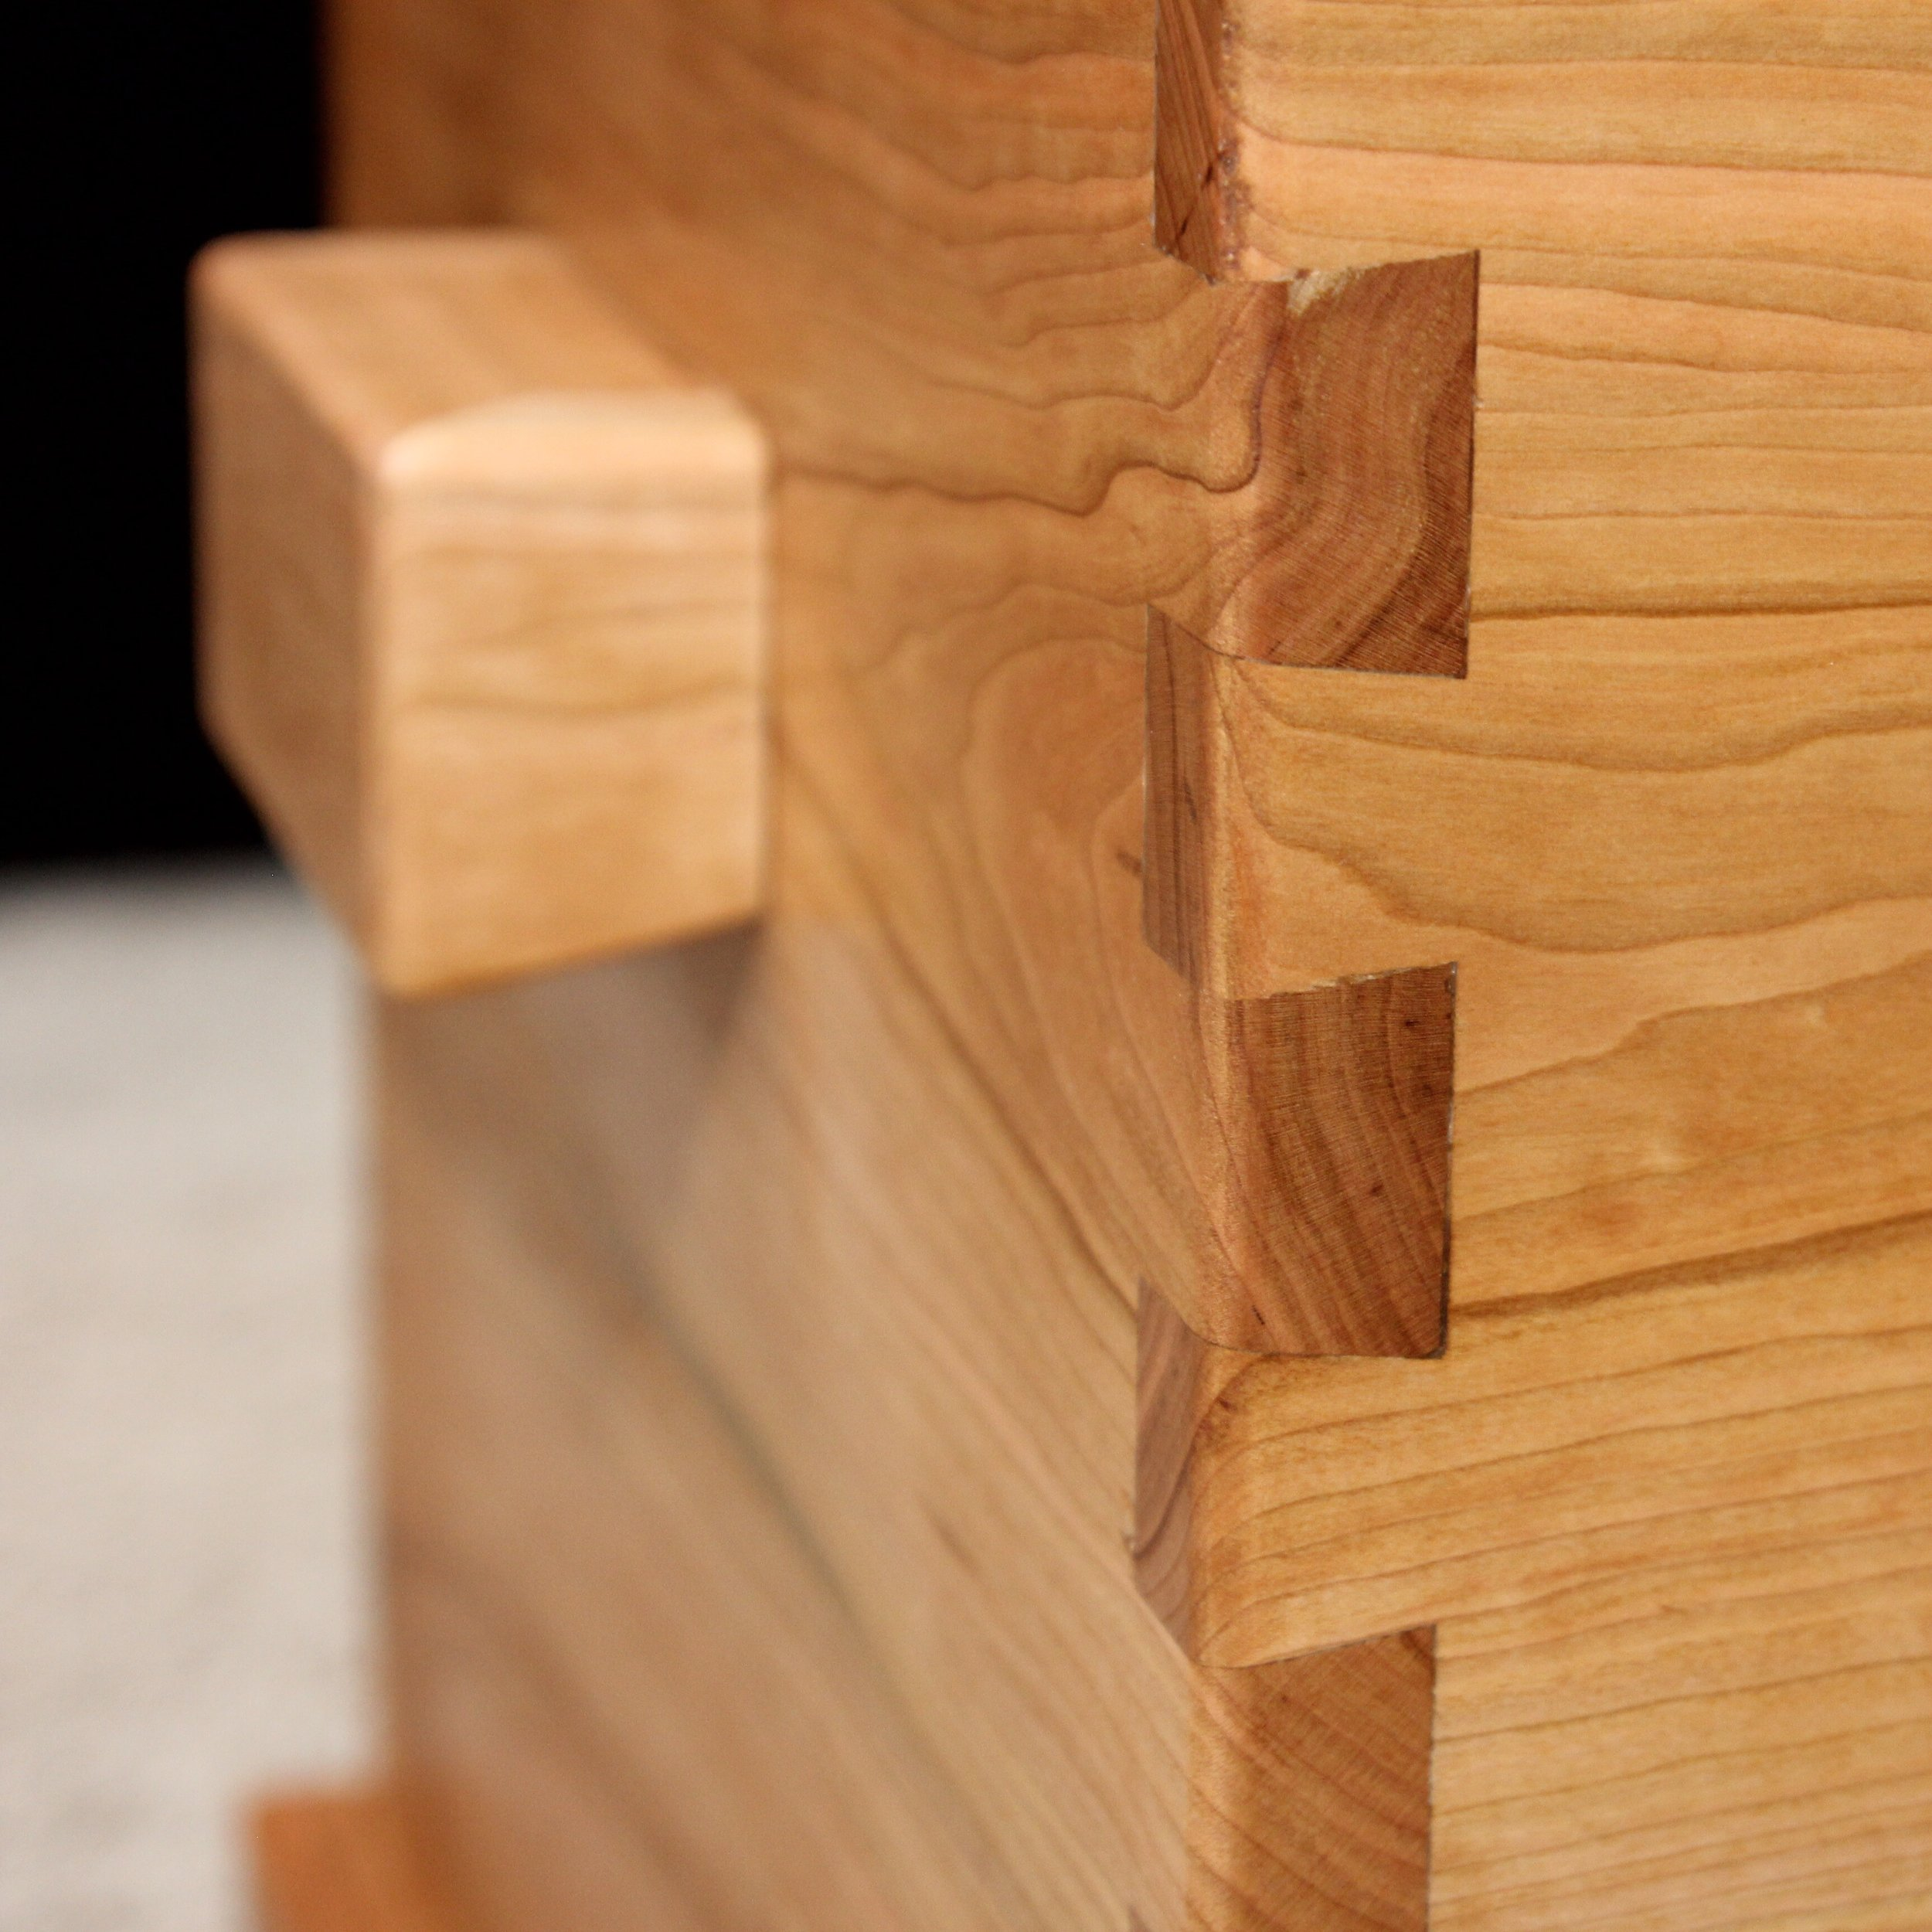 Dovetail joinery for strength and beauty.